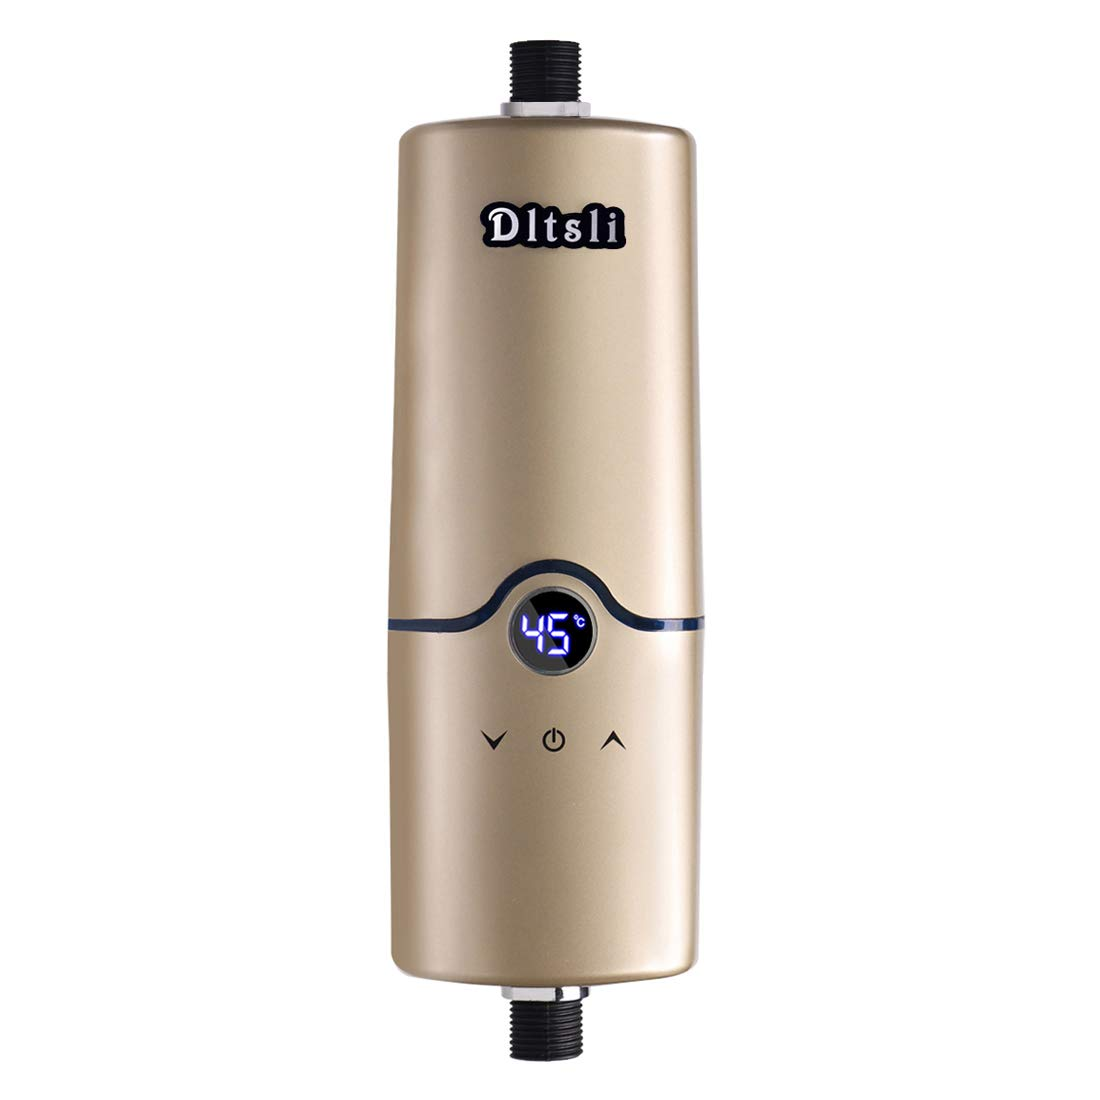 Instant Electric Hot Tankless Water Heater 4 Power Levels 5.5KW 5KW 4.5KW 3.5KW 240V for Bathroom Kitchen Beauty Hair Solan Louty